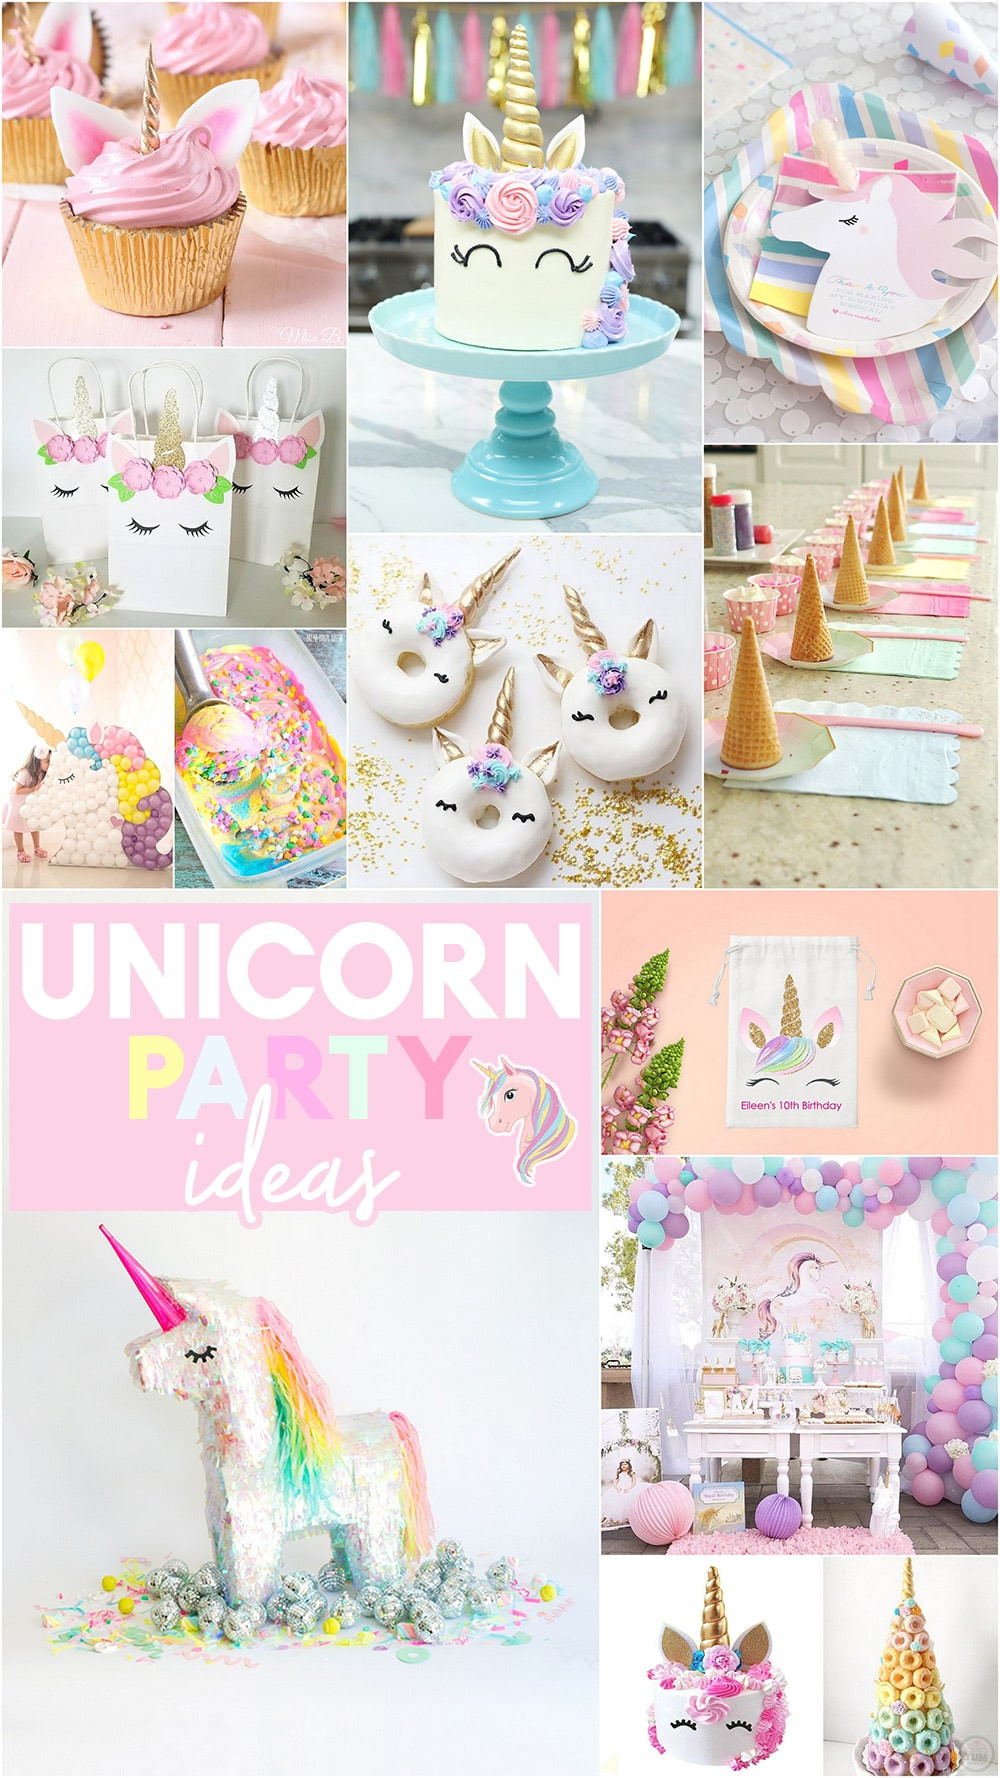 Unicorn Party Ideas  27 Magical Unicorn Party Ideas